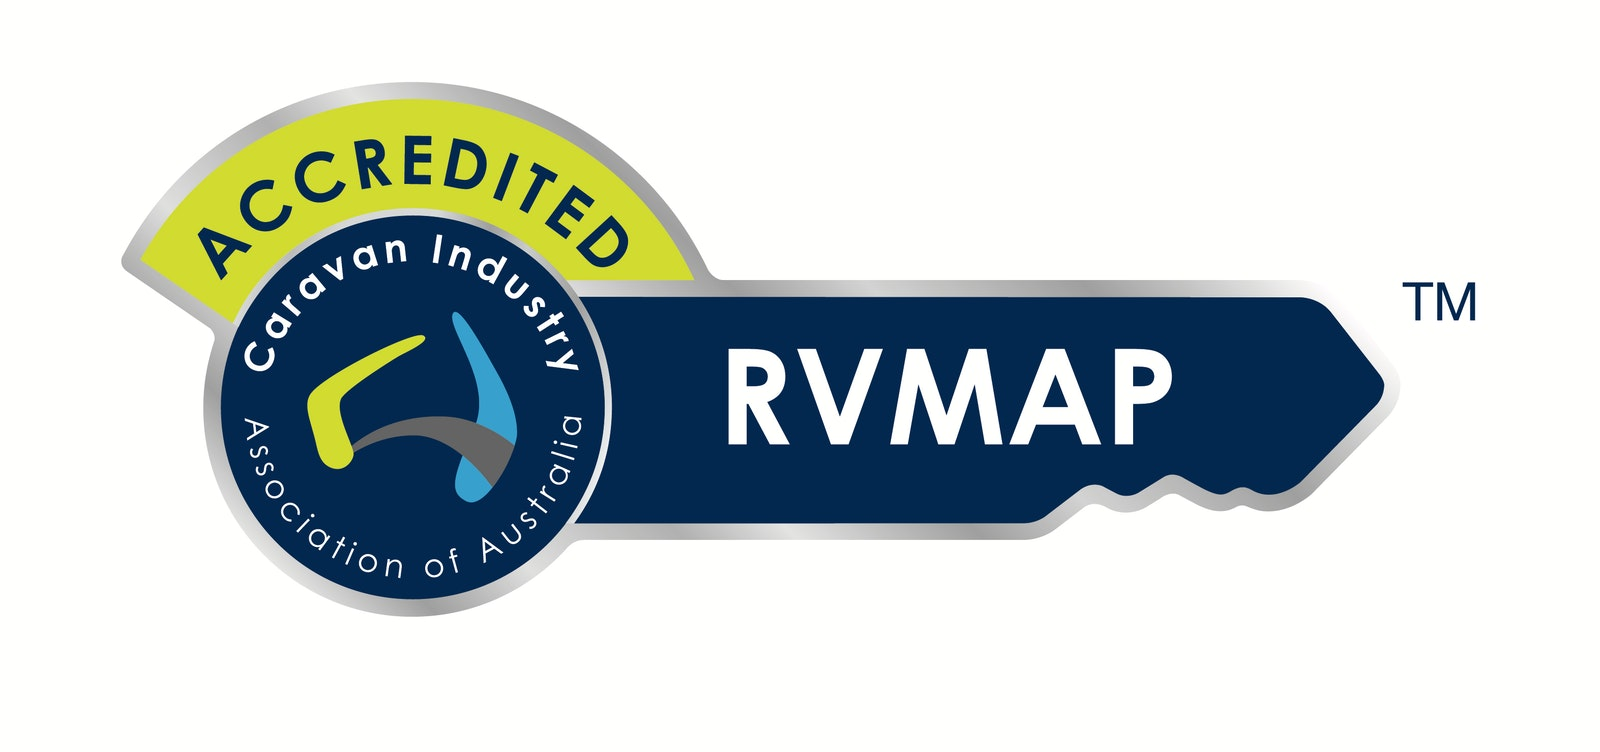 RVMAP Acceditation Key